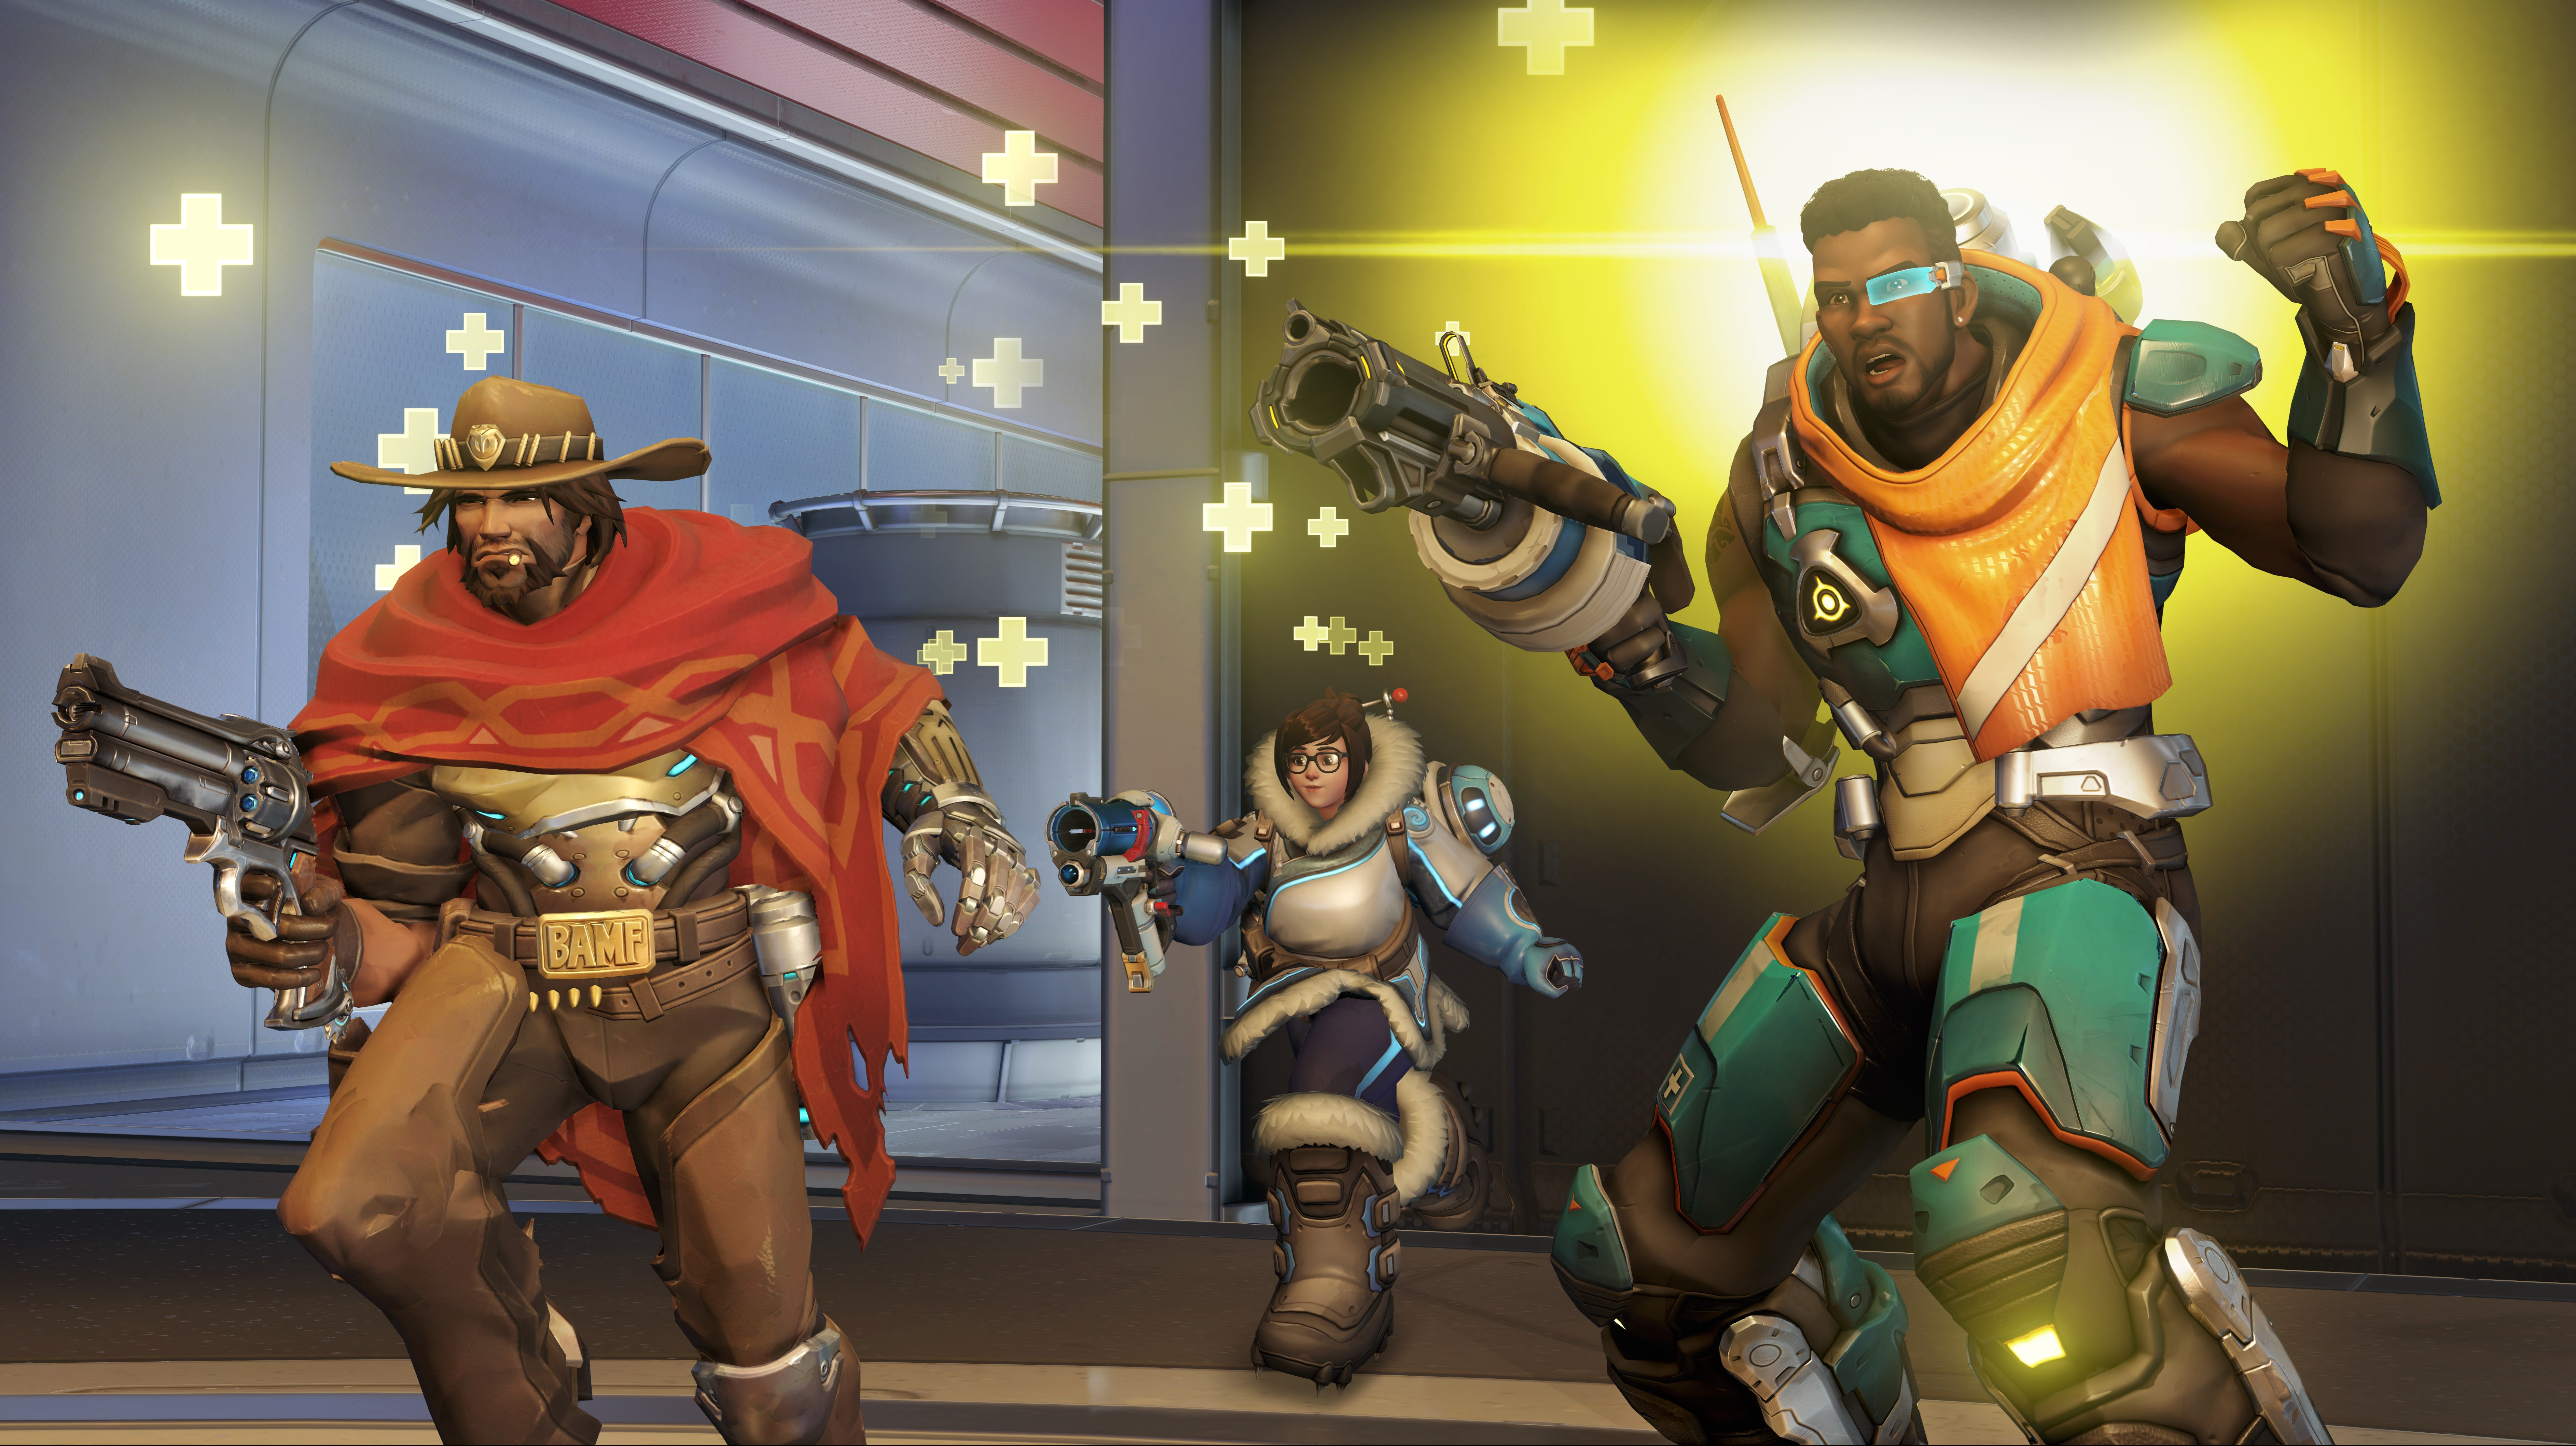 Baptiste, New Support Hero Added to Overwatch PTR